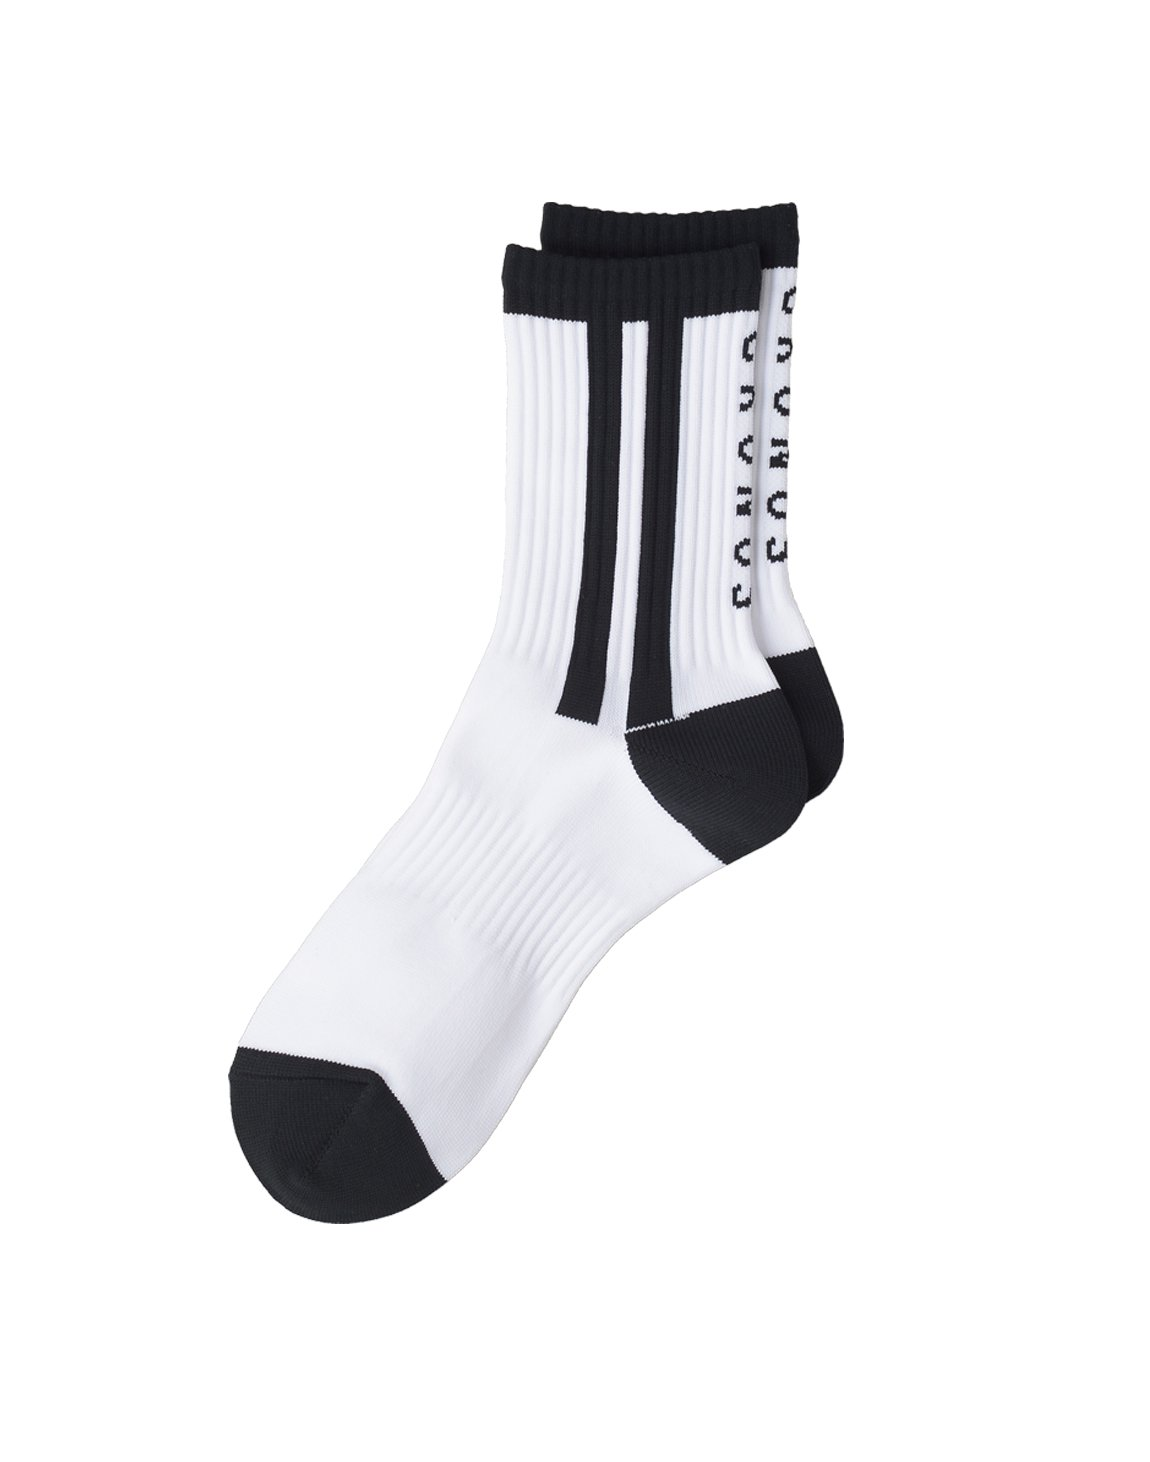 CRONOS 2STRIPE SOCKS【WHITE】